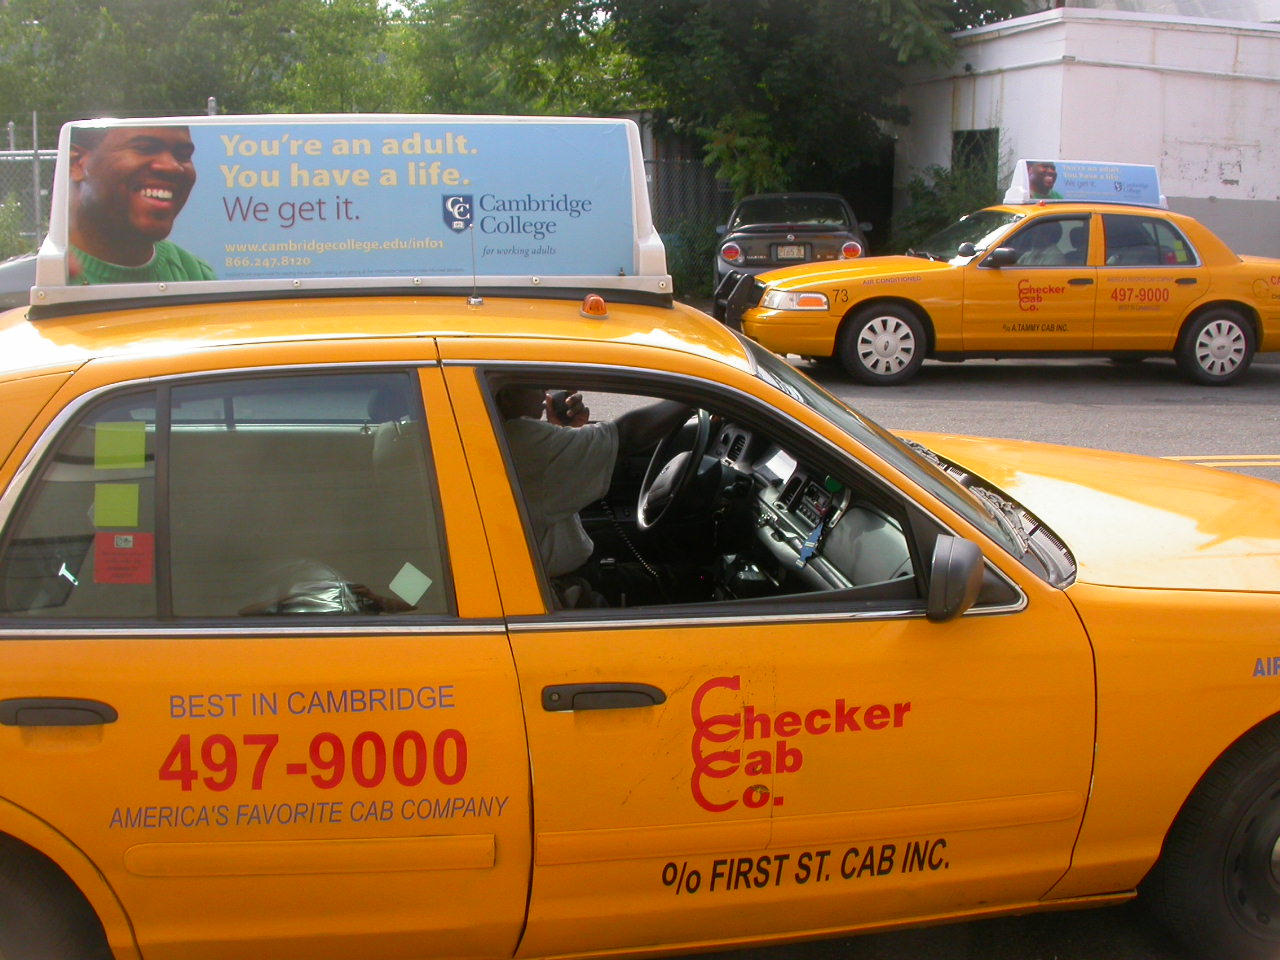 taxi advertising in boston ma billboard connection. Black Bedroom Furniture Sets. Home Design Ideas